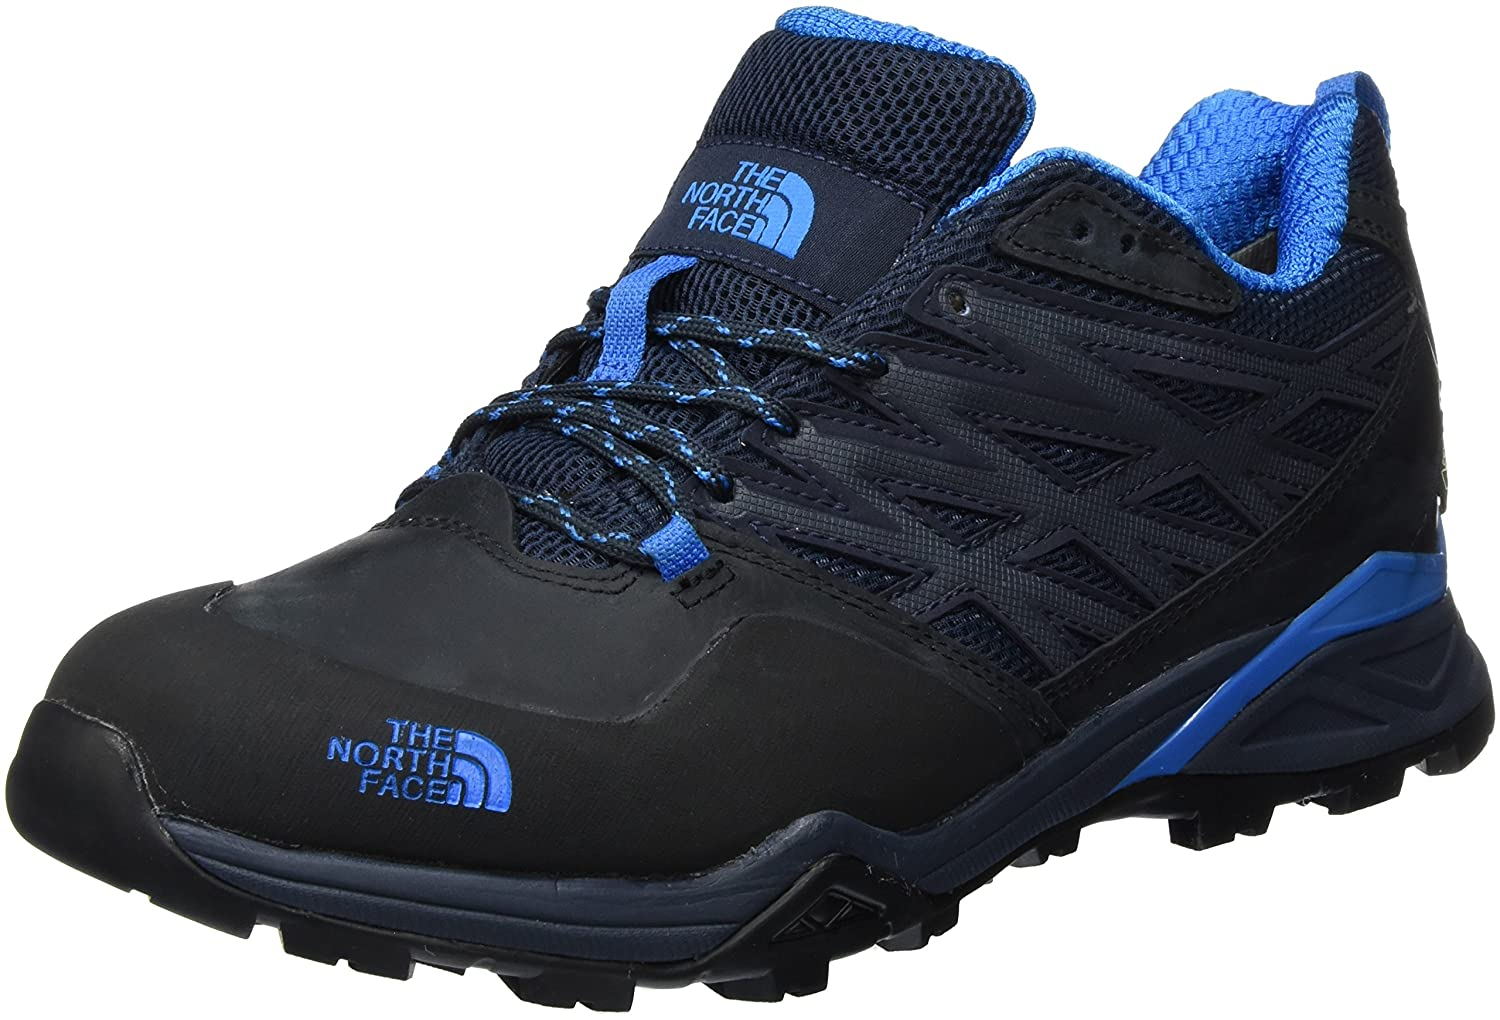 North Face T0CDF6, Botas De Senderismo para Hombre 39 EU|Multicolor (Urban Navy/Blue Aster)